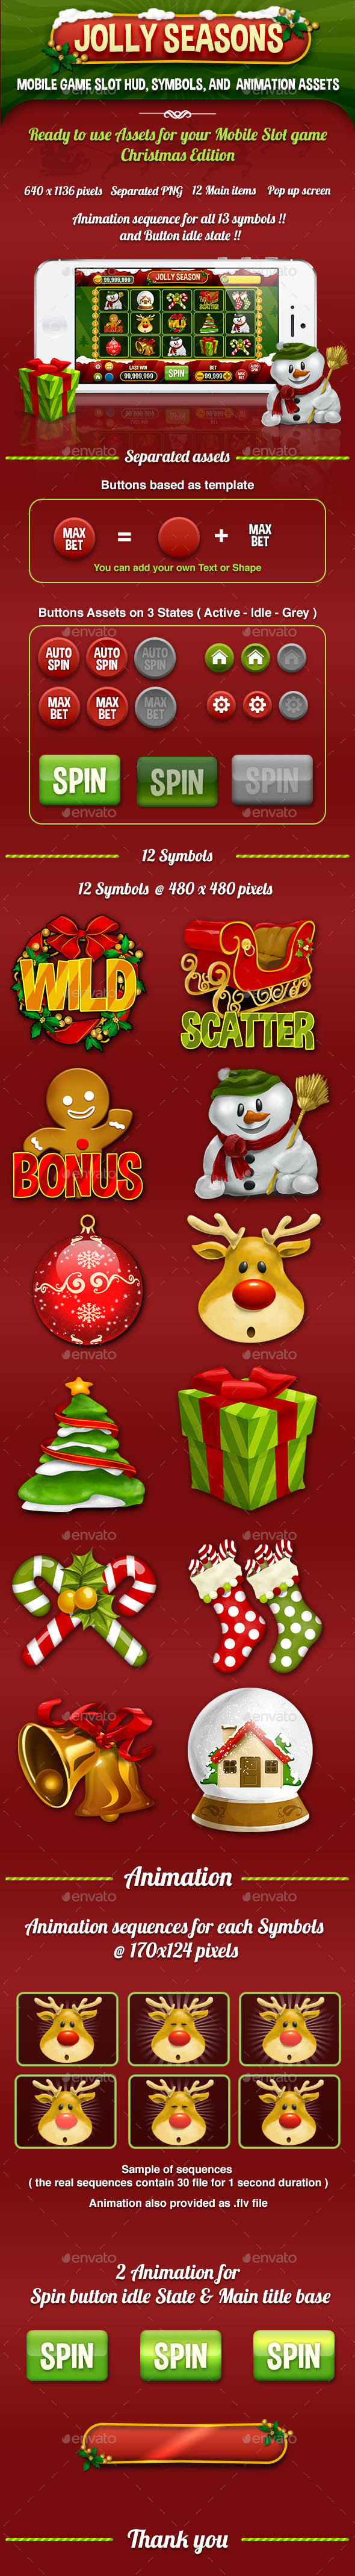 Jolly Seasons Slot Mobile Game Kits Assets - Game Kits Game Assets